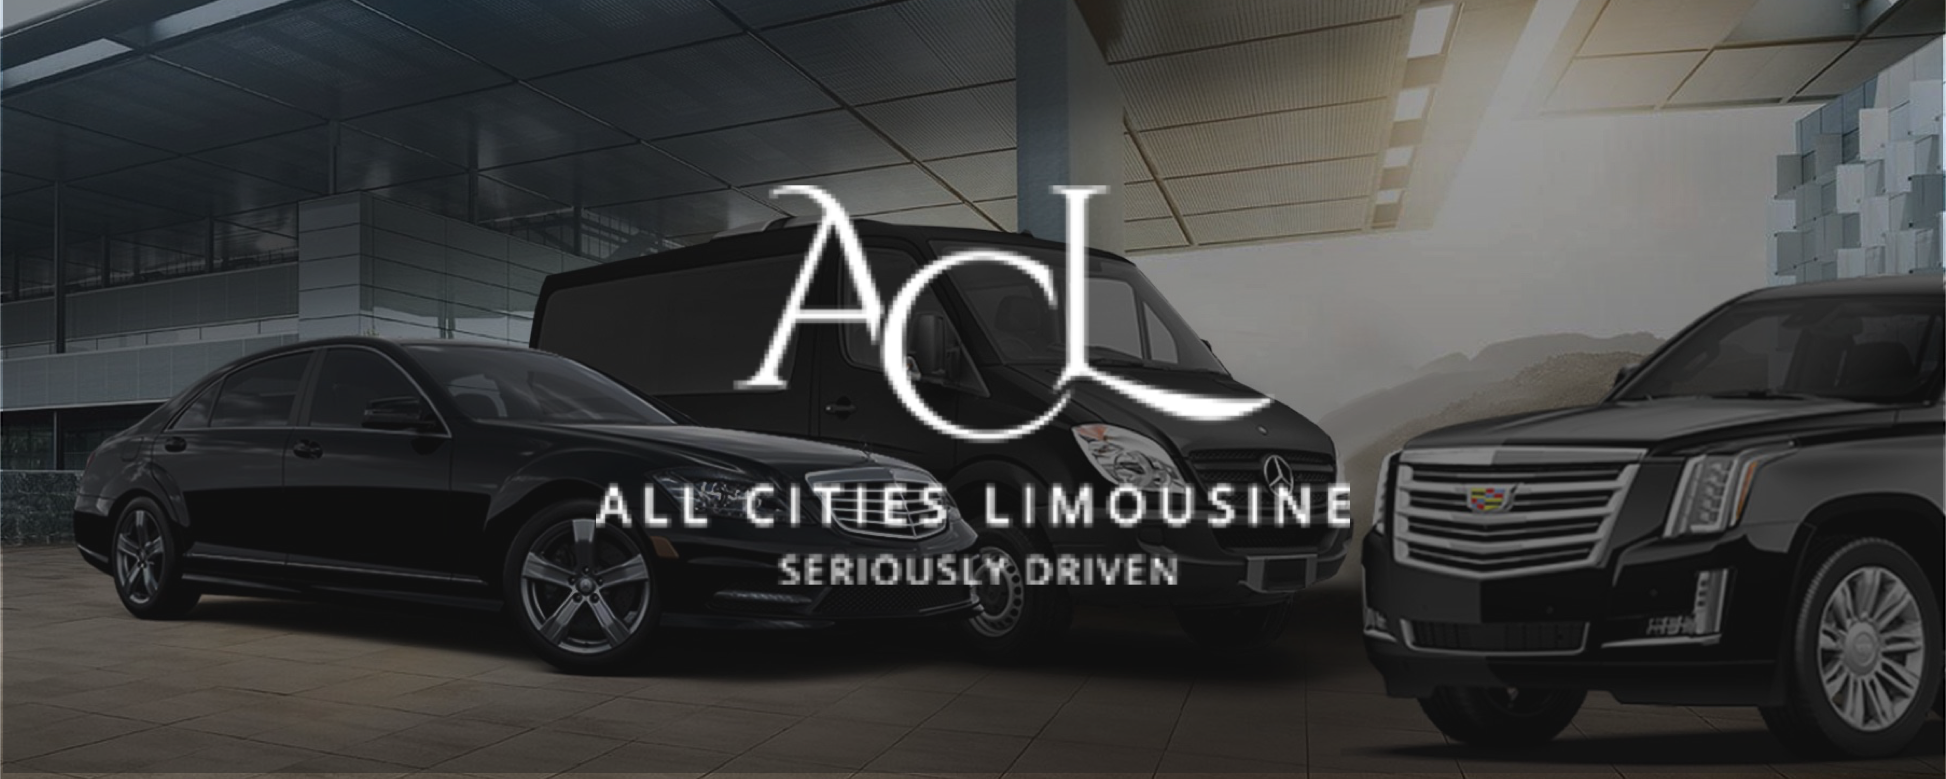 All Cities Limousine Inc